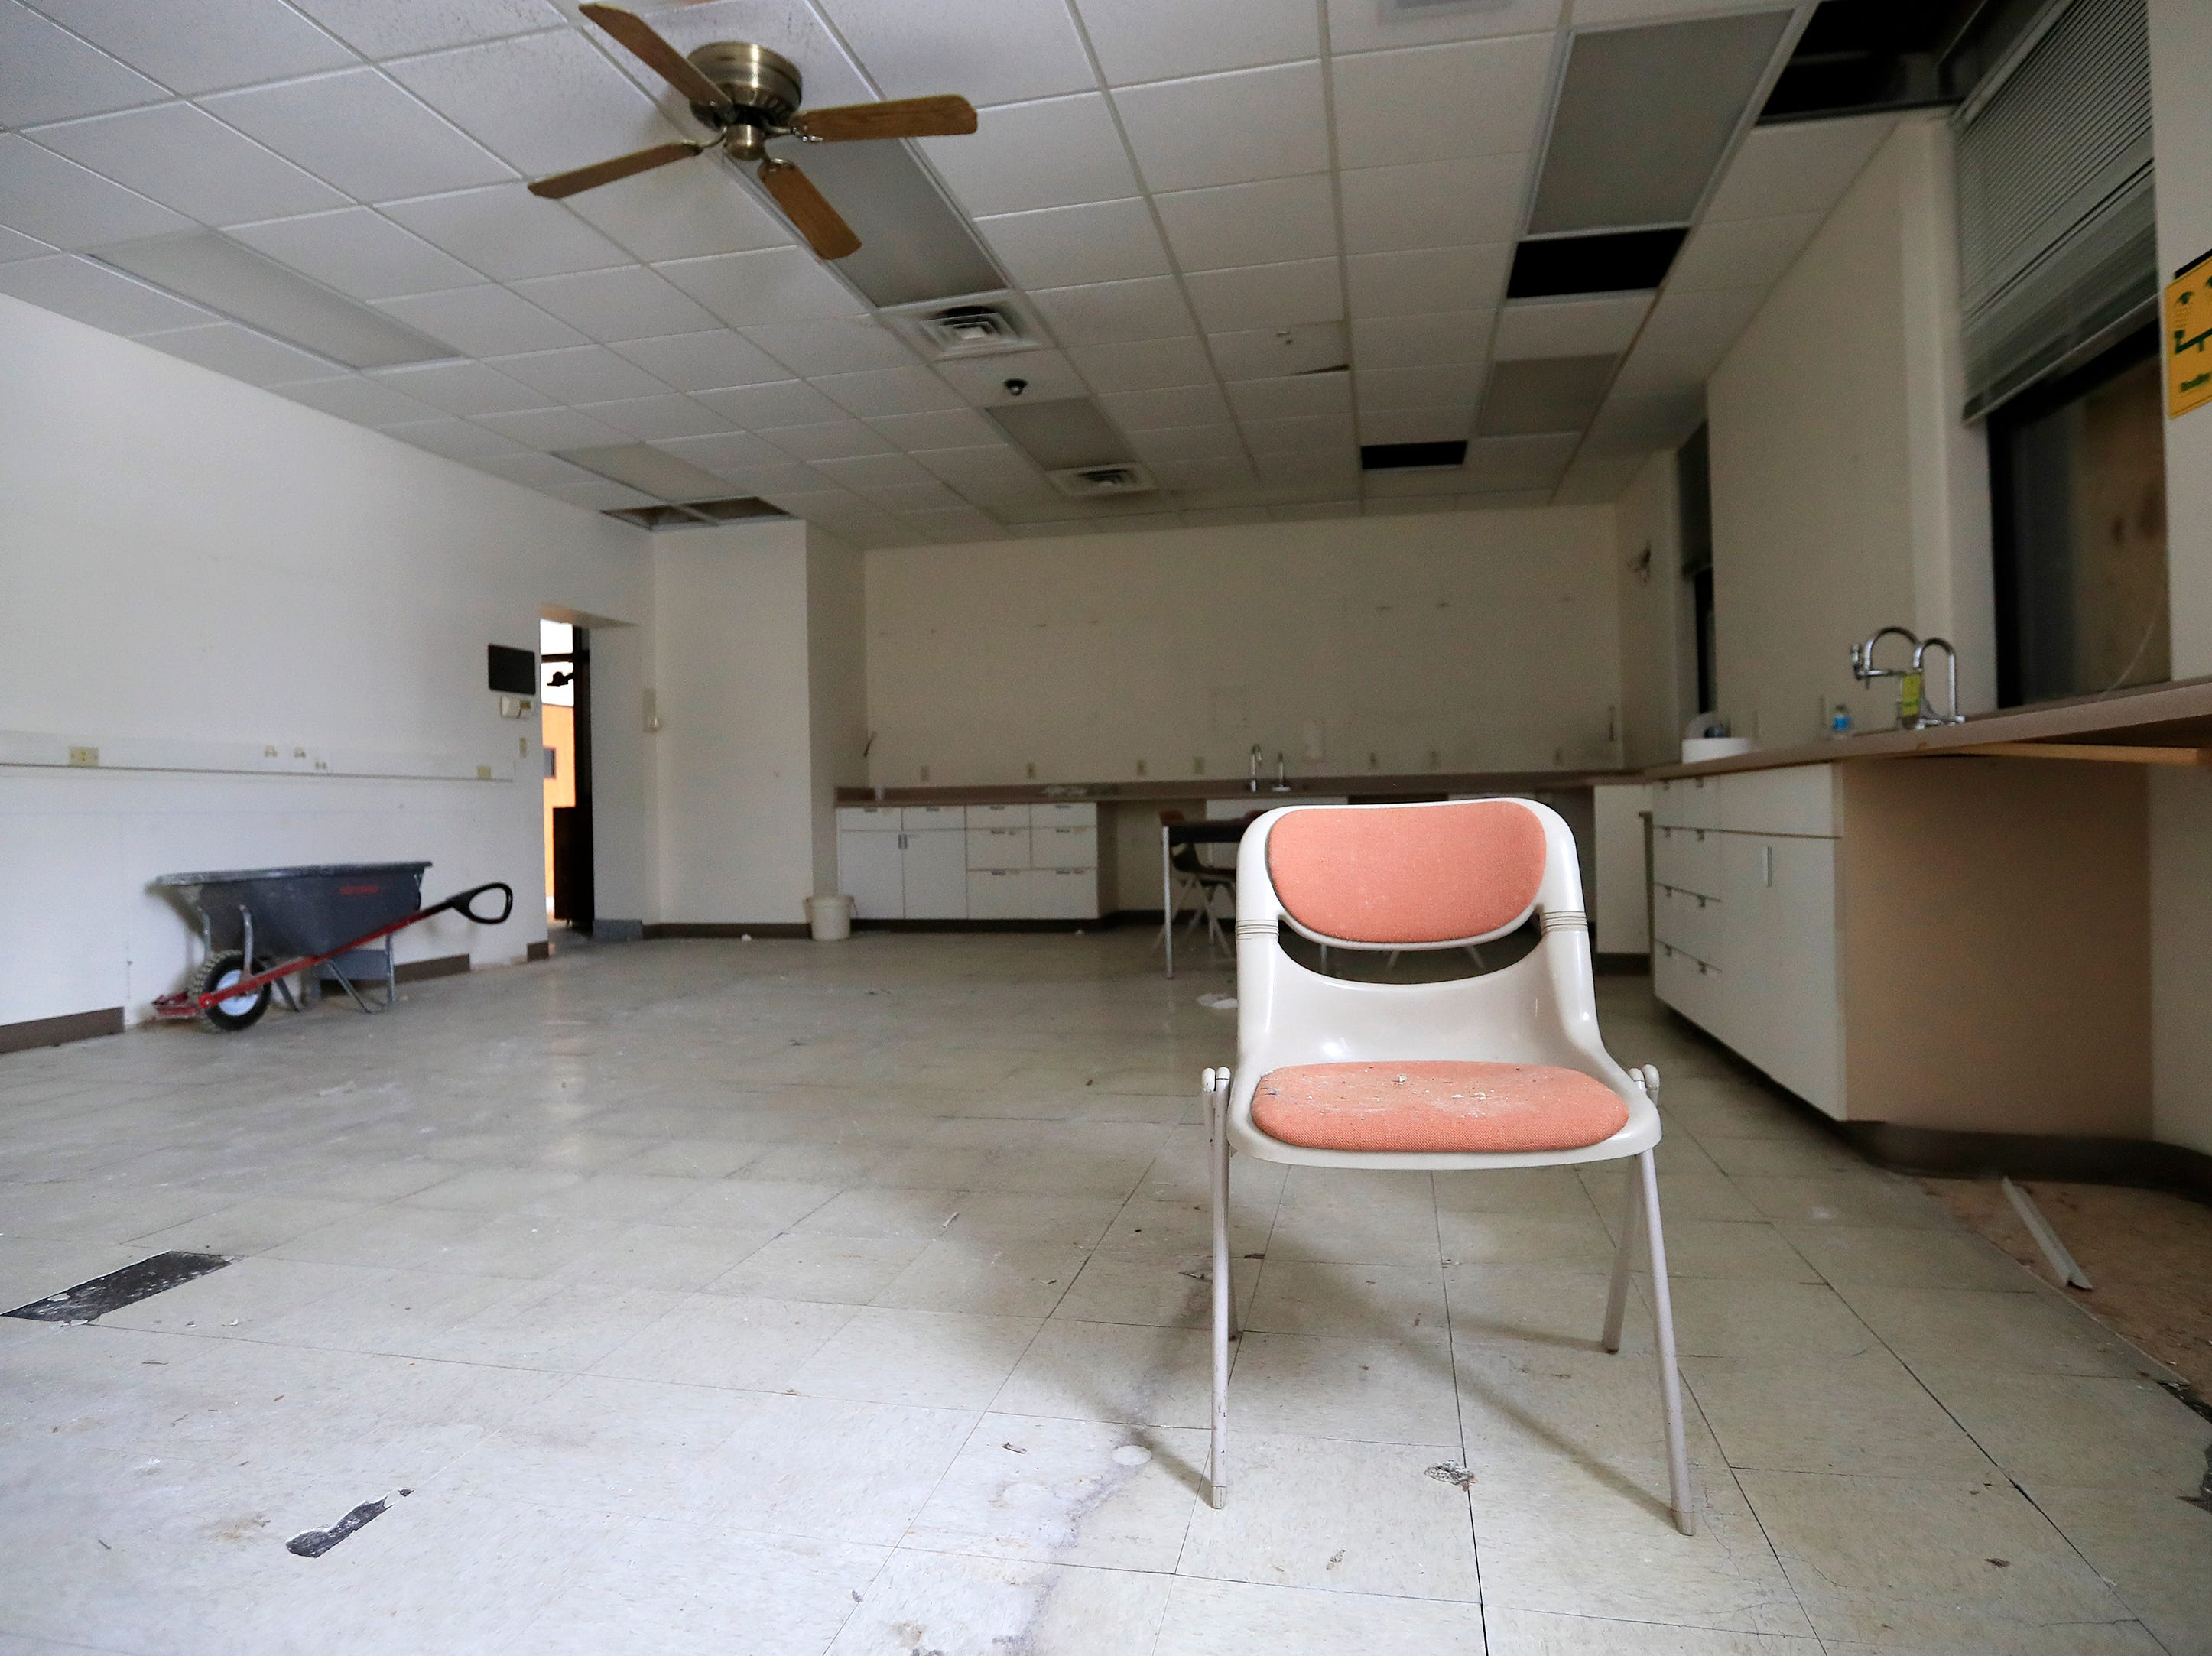 A classroom inside the former Whitney School is shown on Tuesday, February 26, 2019 in Green Bay, Wis. The building is being converted into apartments this year.